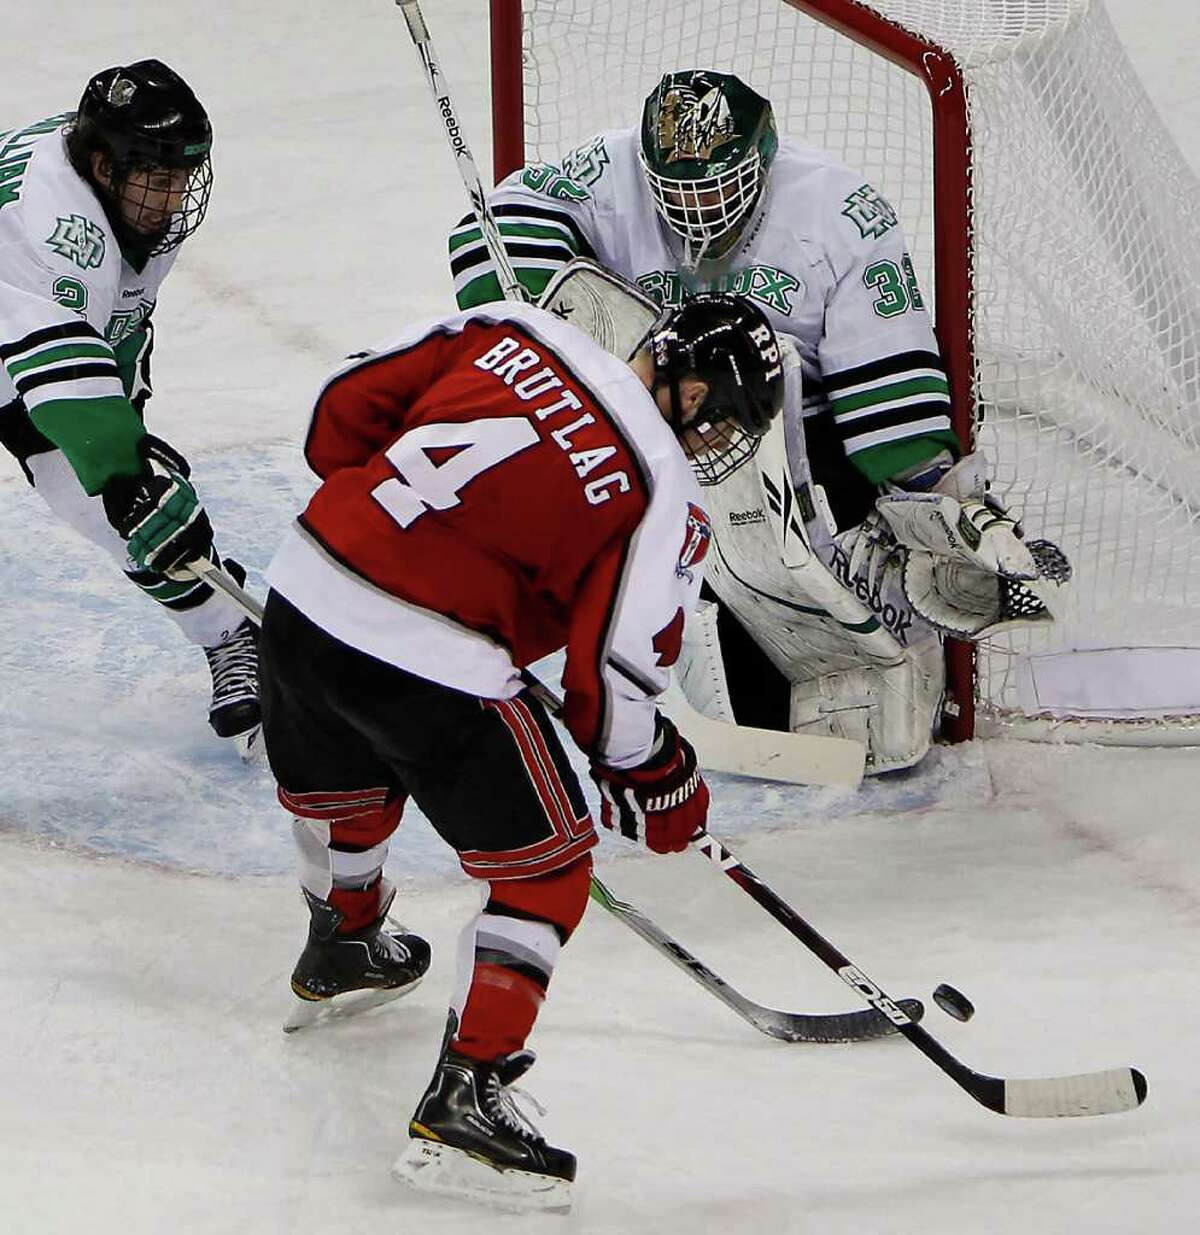 NorthDakota's goalie Aaron Dell get ready for a shot by Rensselaer's Bryan Brutlag Saturday March 26, 2011 at the Resch Center in Green Bay, Wis. during the first round of the NCAA Division I Men's Ice Hockey Midwest Regional. Rensselaer lost 6-0.(Photo by Mike Roemer)